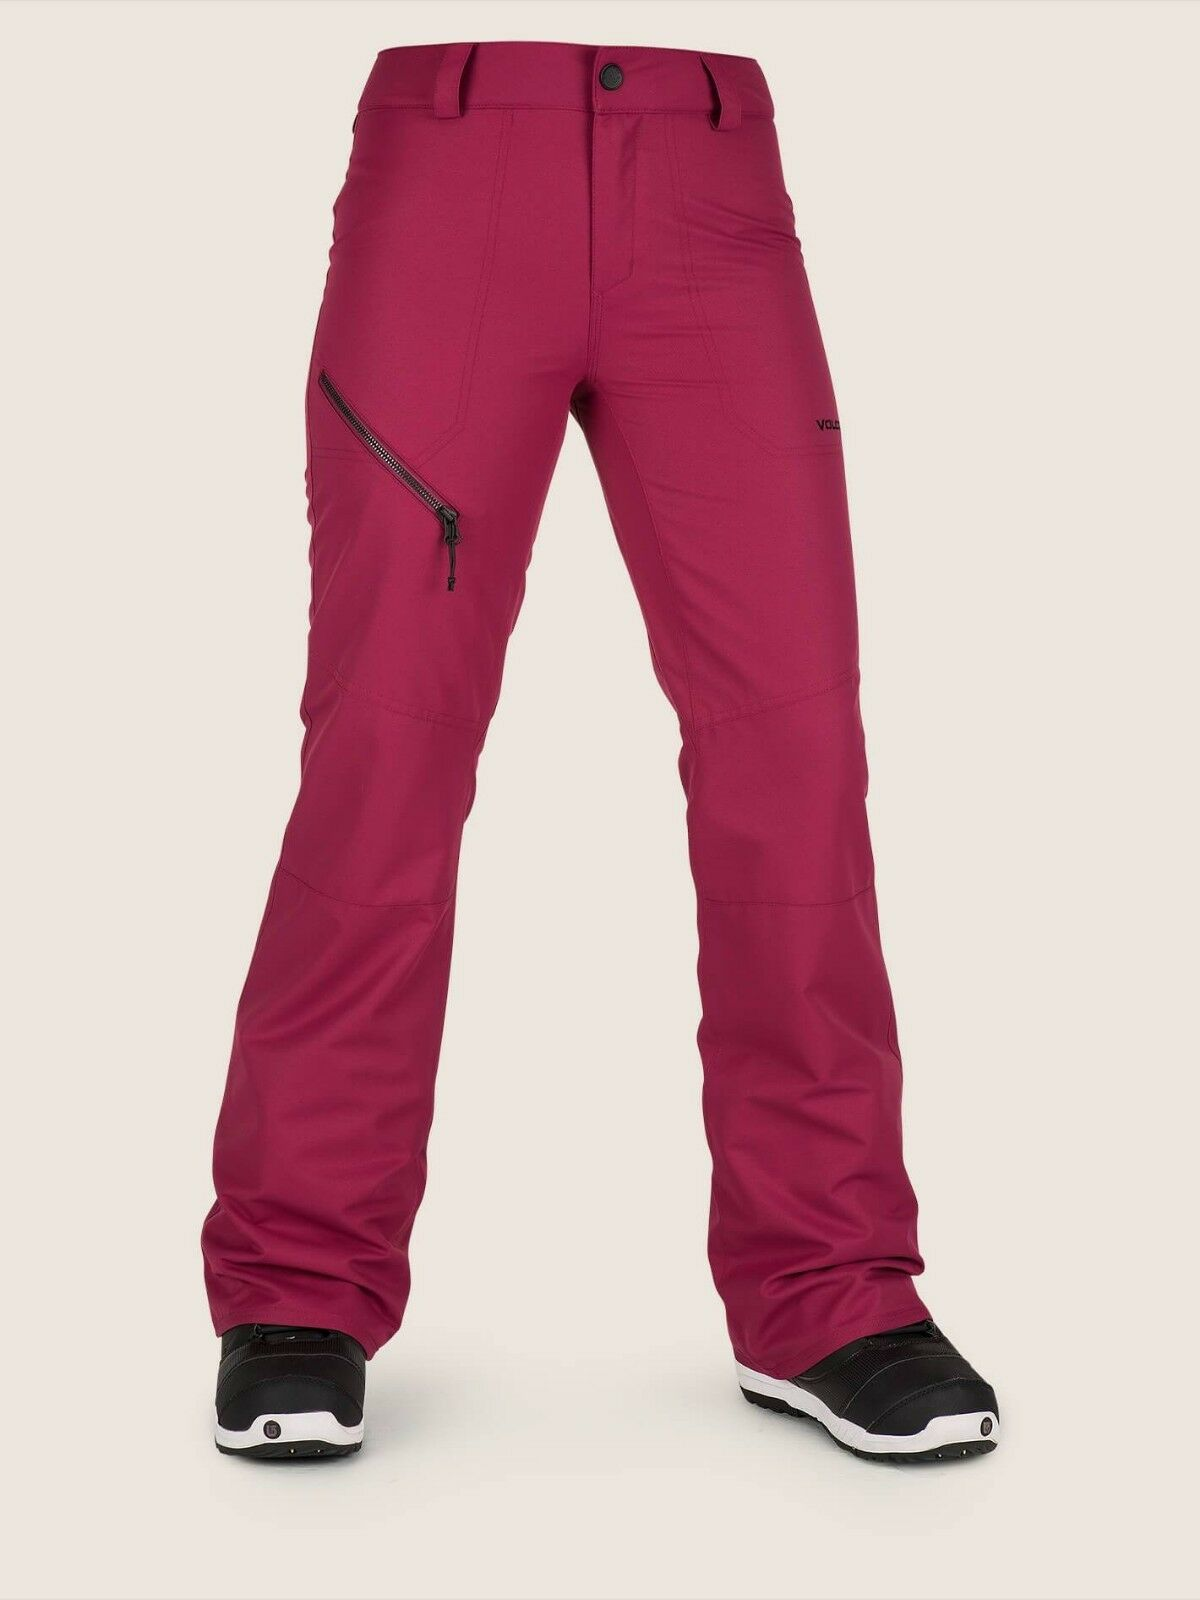 2019 NWT WOMENS VOLCOM HALLEN  PANT  110 S Magenta modern slim fit  will make you satisfied